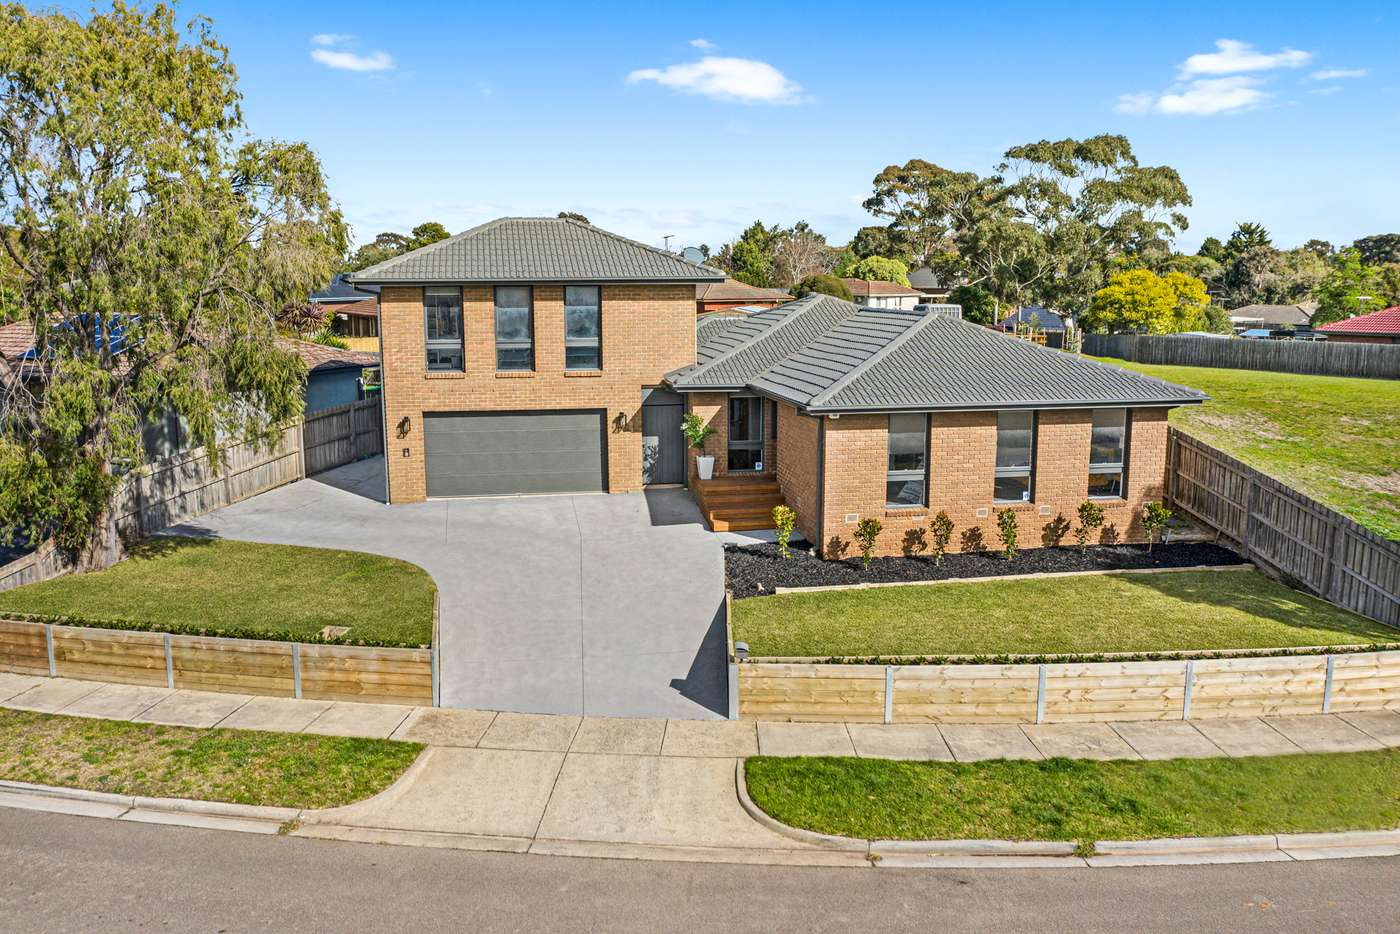 Main view of Homely house listing, 73 Dunsterville Crescent, Frankston VIC 3199